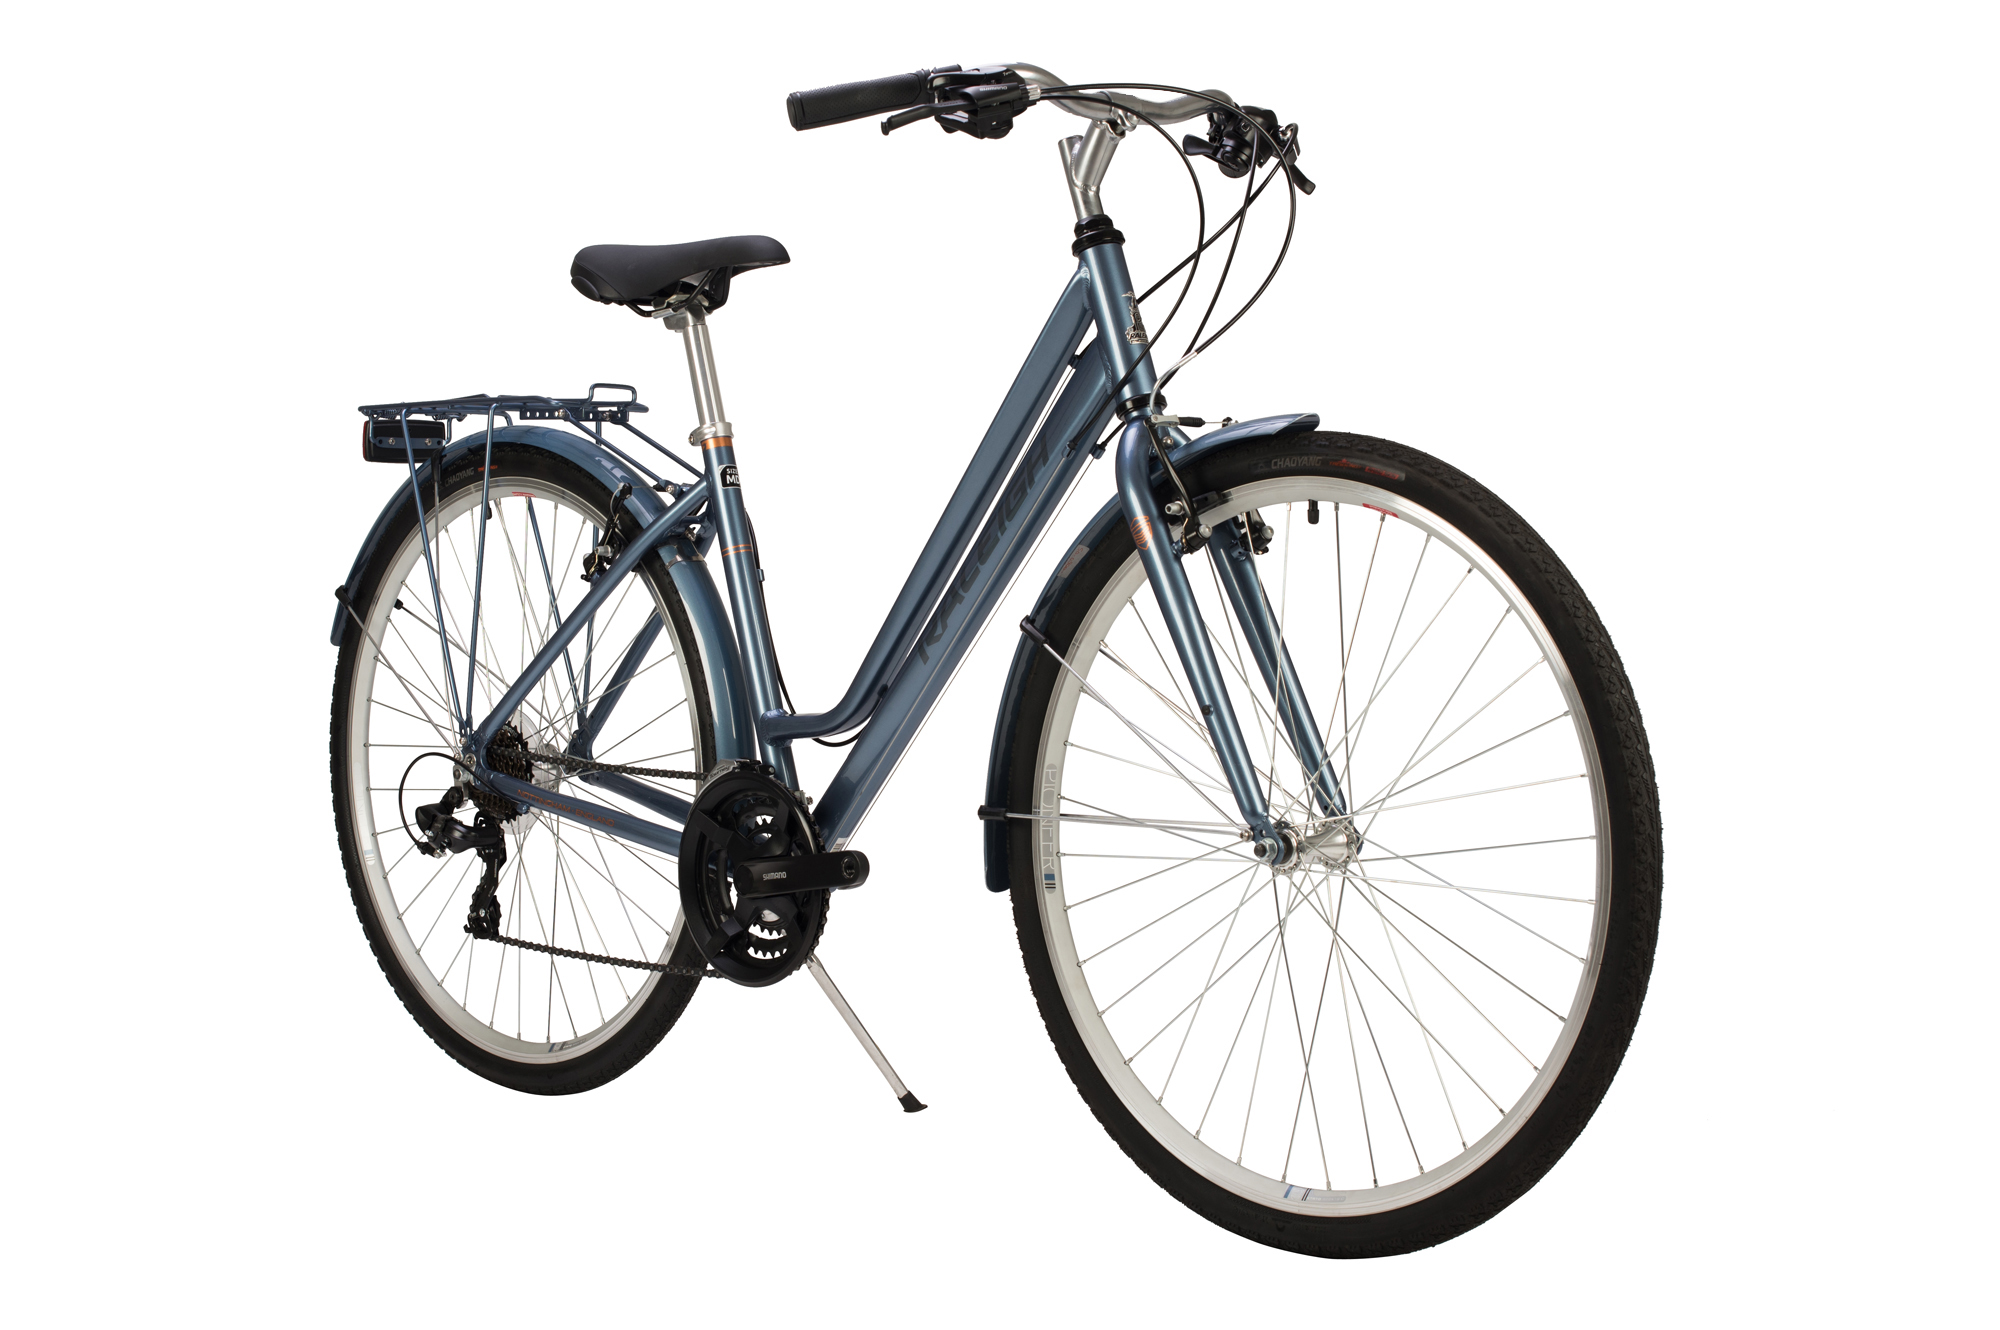 Front view of the Raleigh Pioneer low step bike in grey